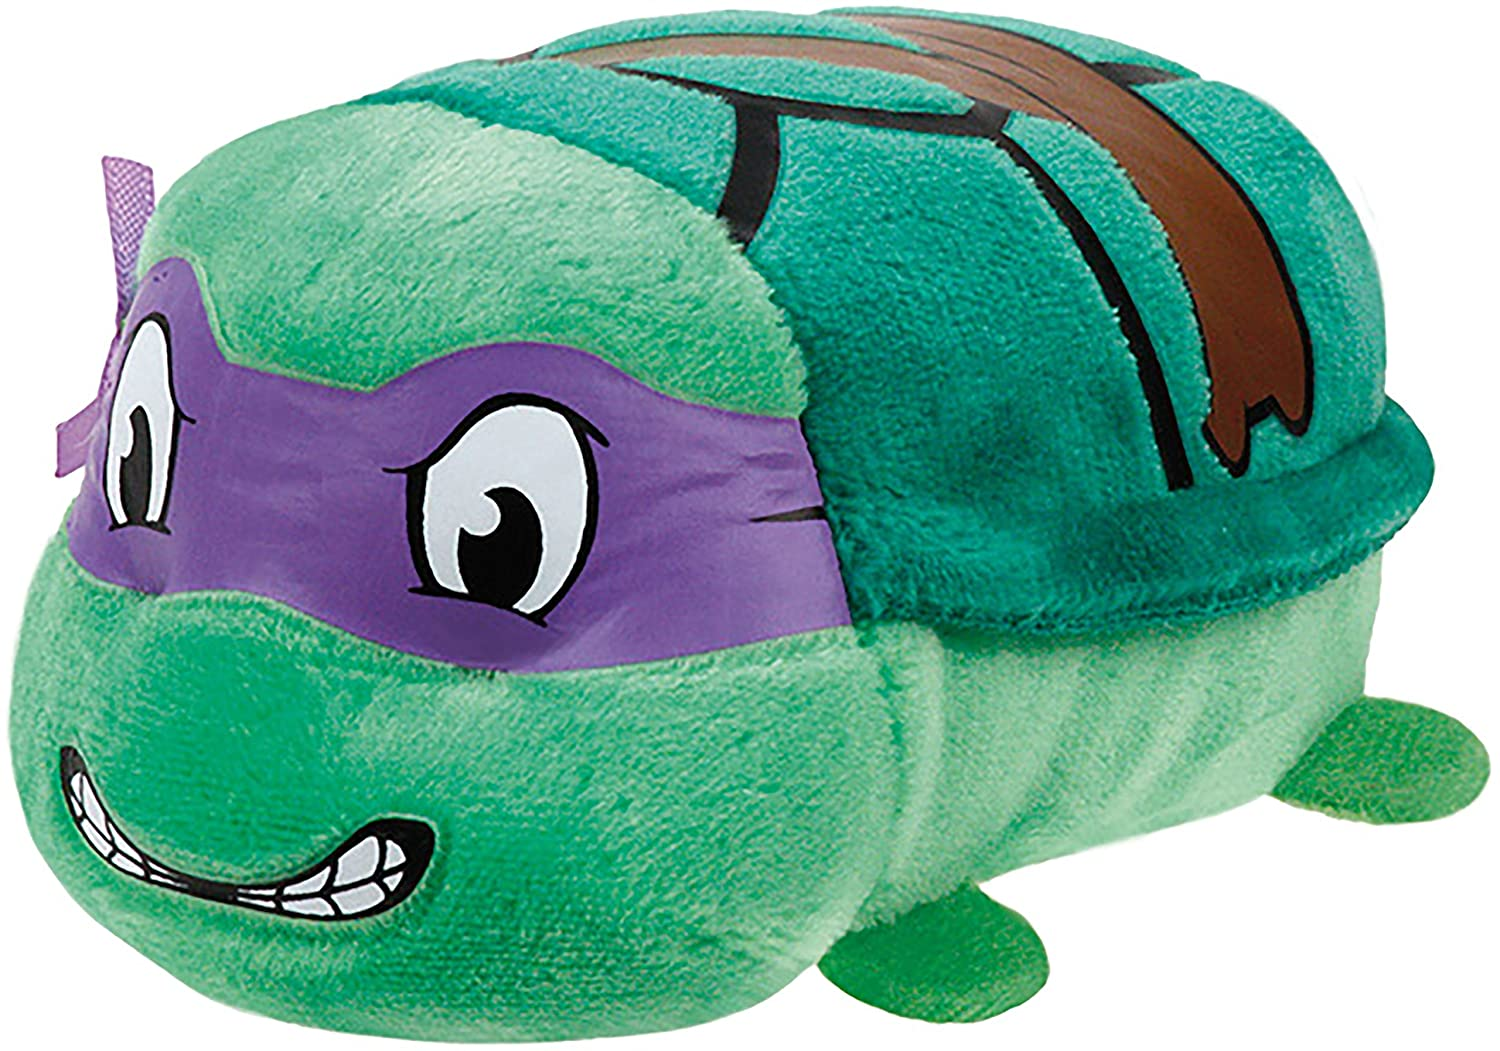 Ty - Tortugas Ninja Donatello: Máscara, 10 cm, Color púrpura (United Labels Ibérica 42174TY): Amazon.es: Juguetes y juegos